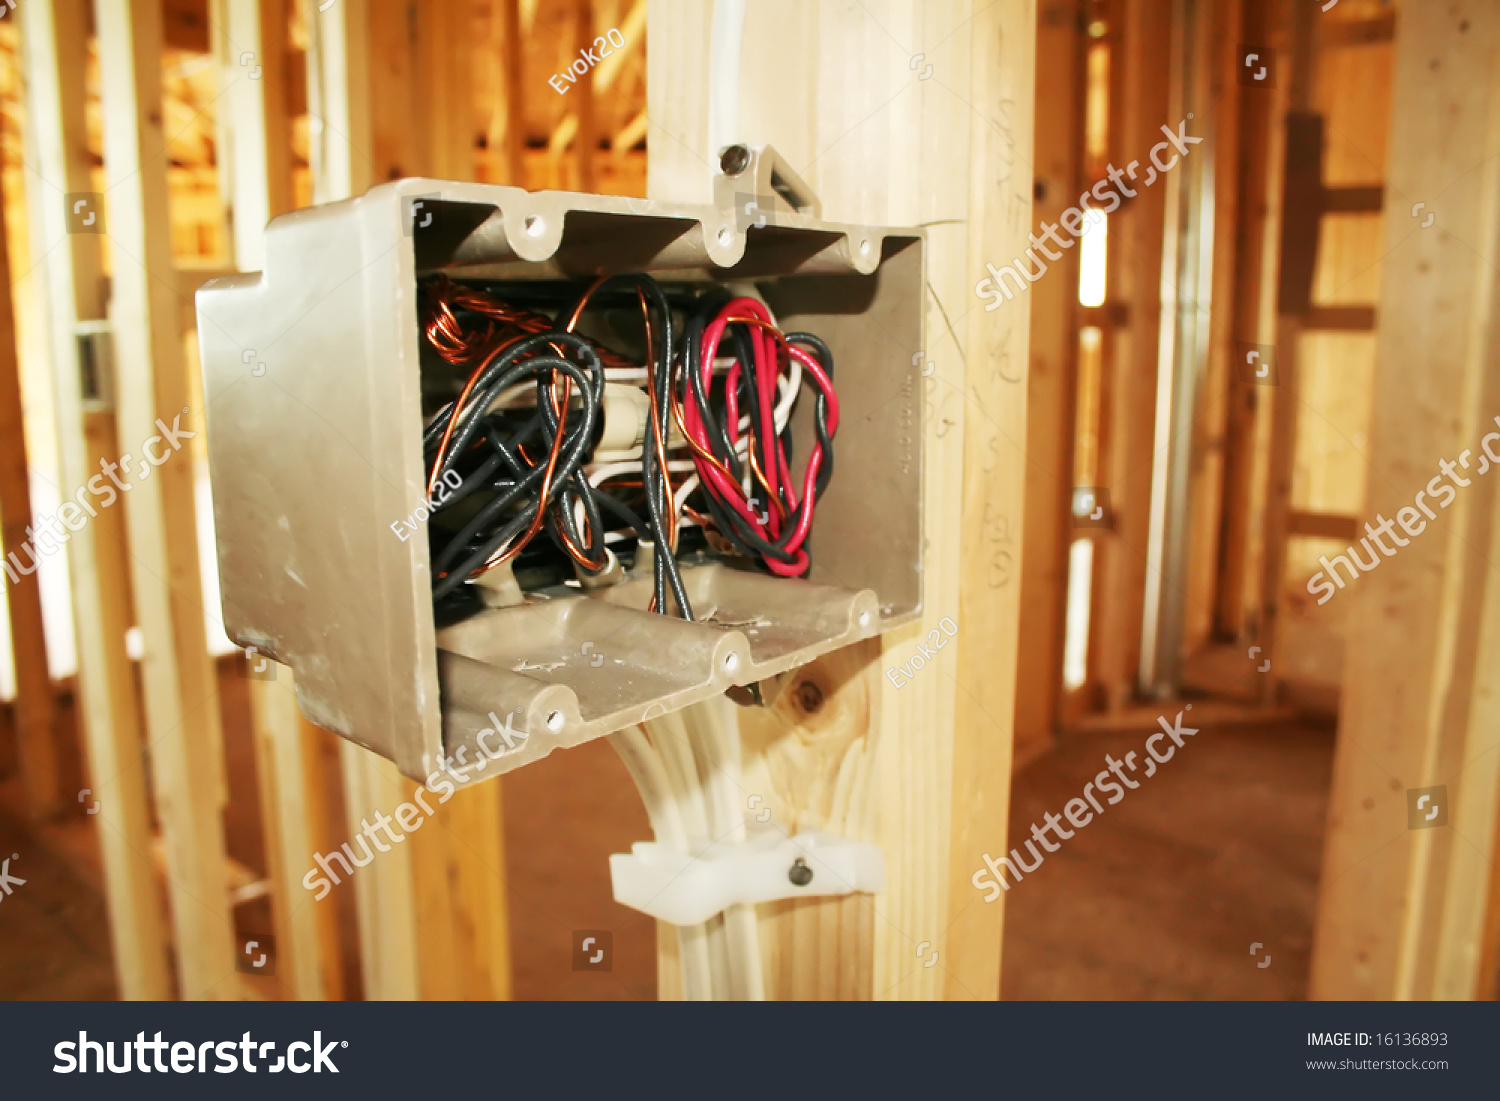 hight resolution of electrical box with wiring in a new home under construction